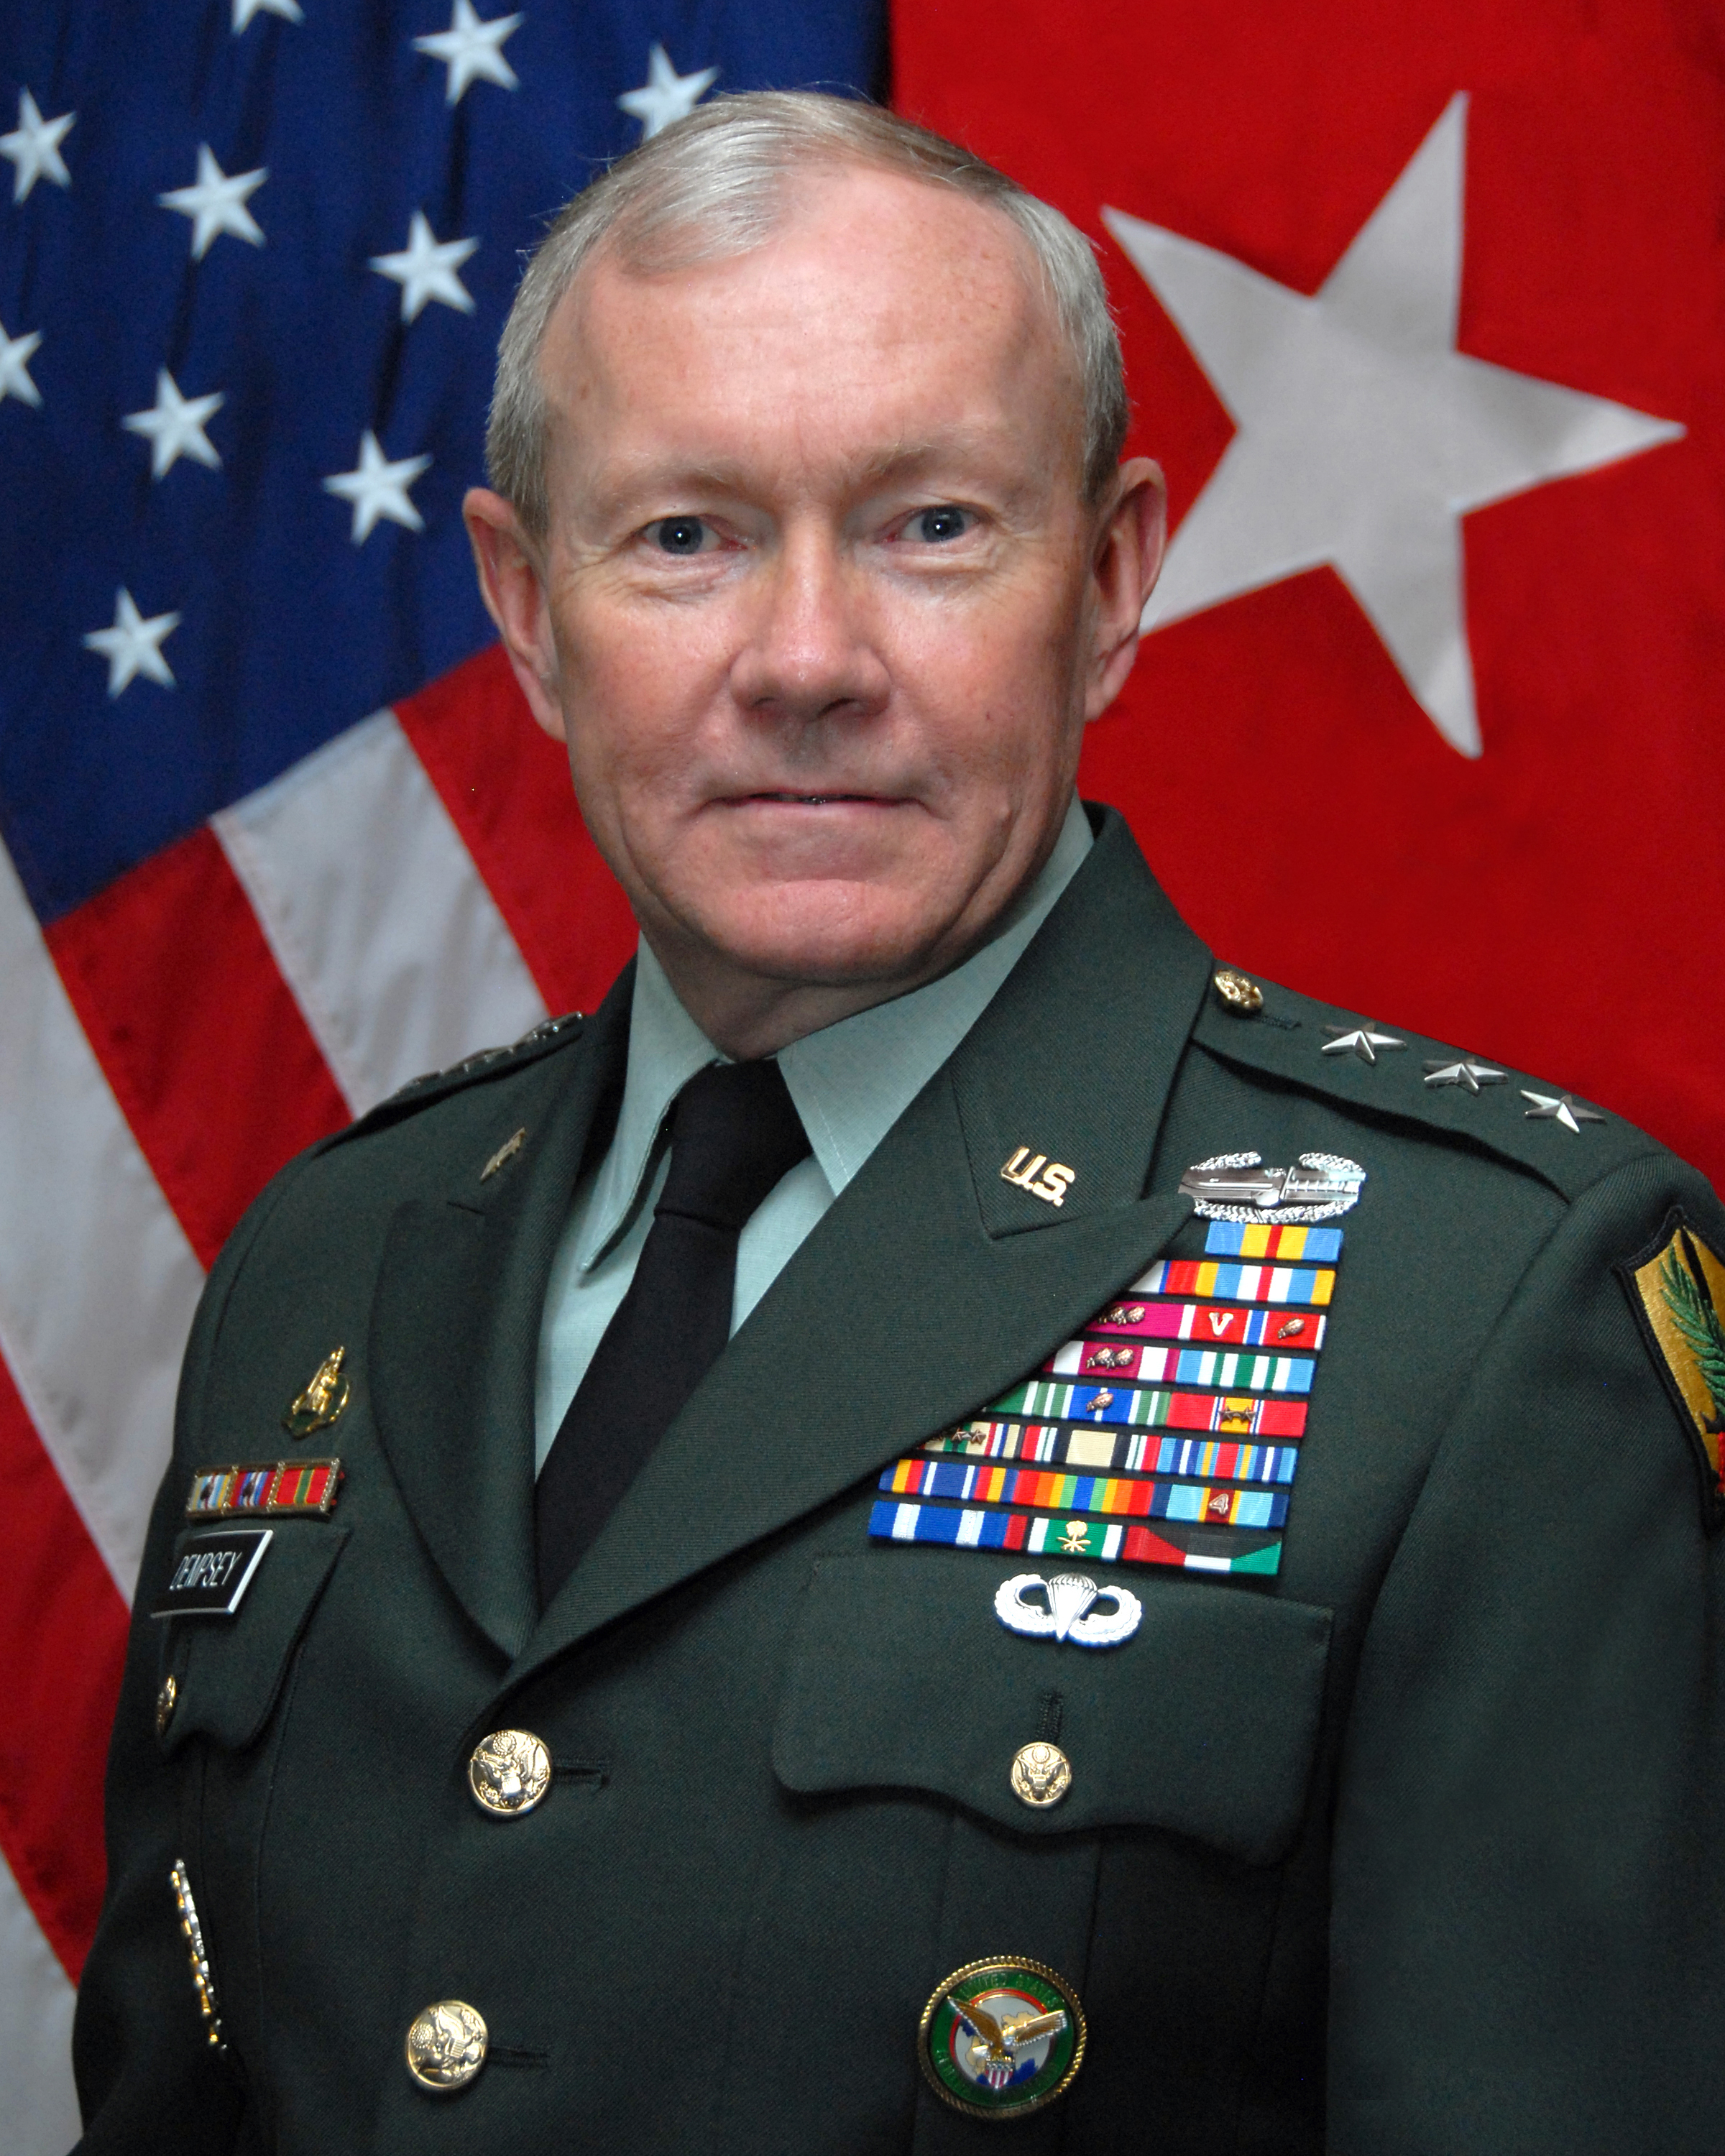 http://upload.wikimedia.org/wikipedia/commons/1/1c/General_Martin_E._Dempsey.jpg